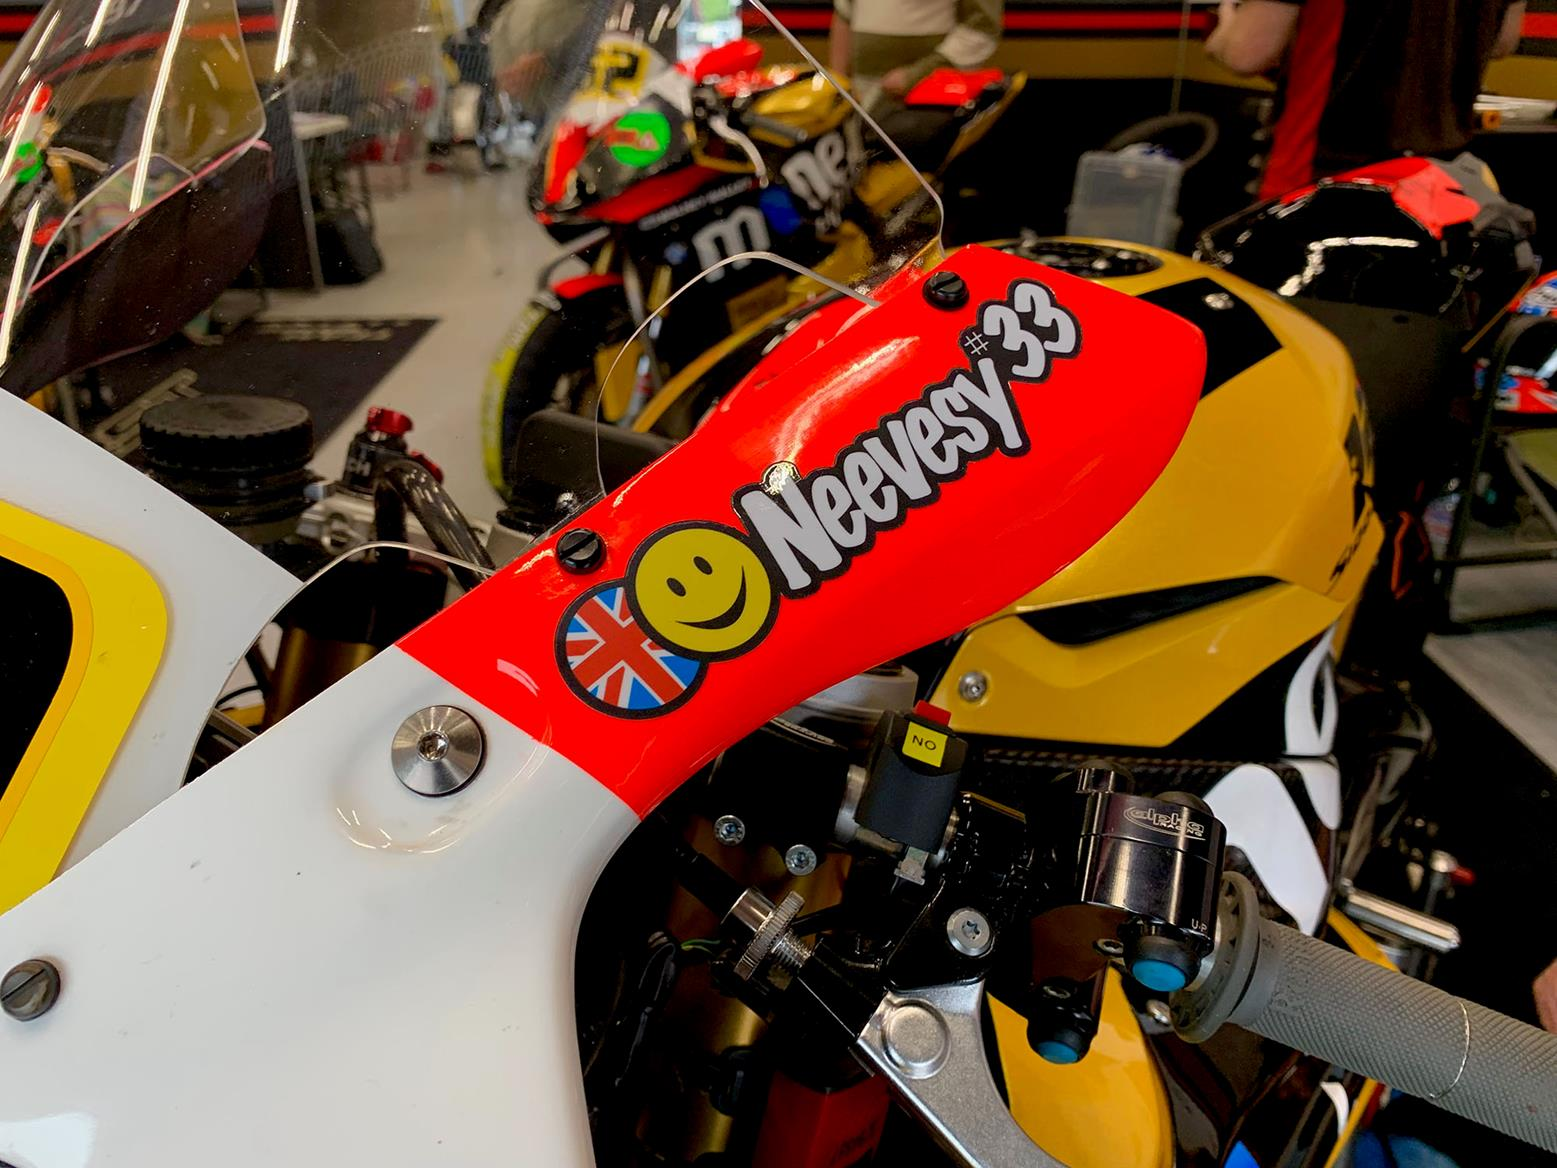 A race bike isn't complete without full factory stickers...